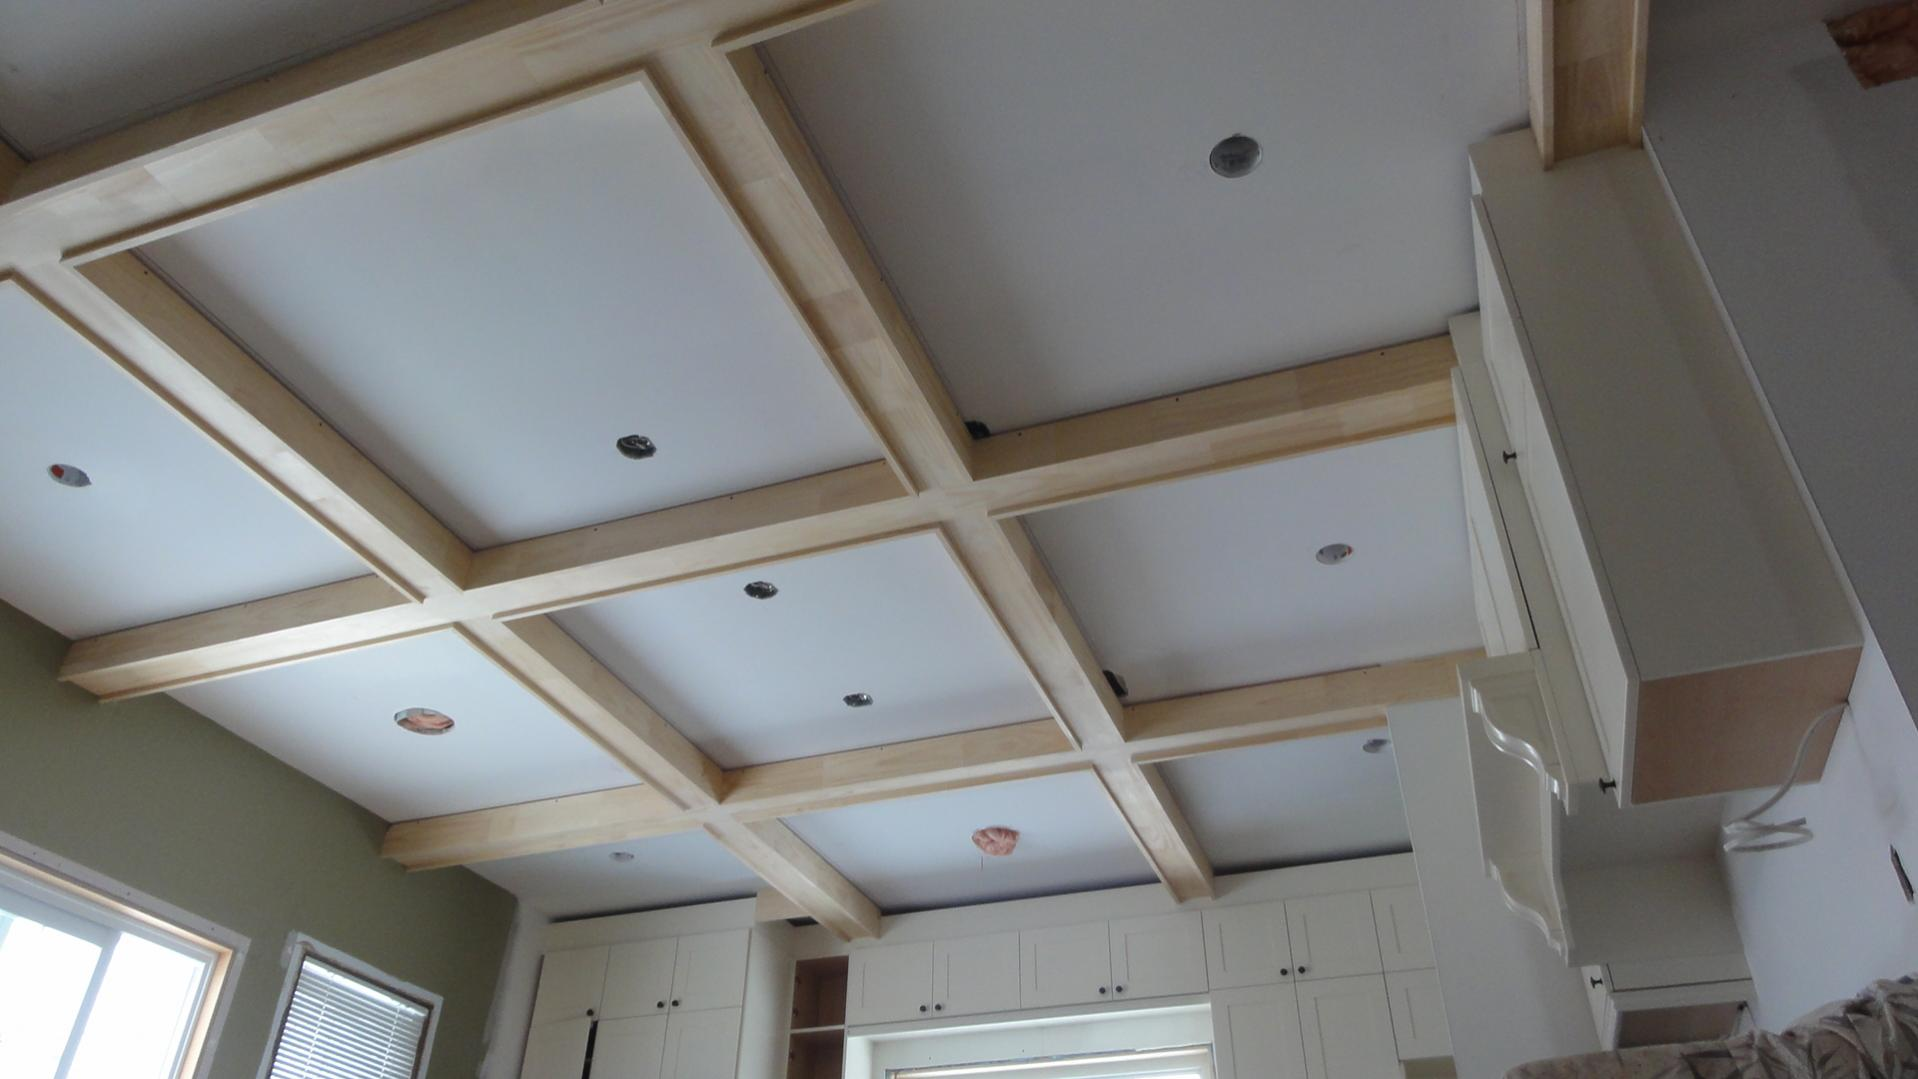 Coffered Ceilings in progress for kitchen ceiling